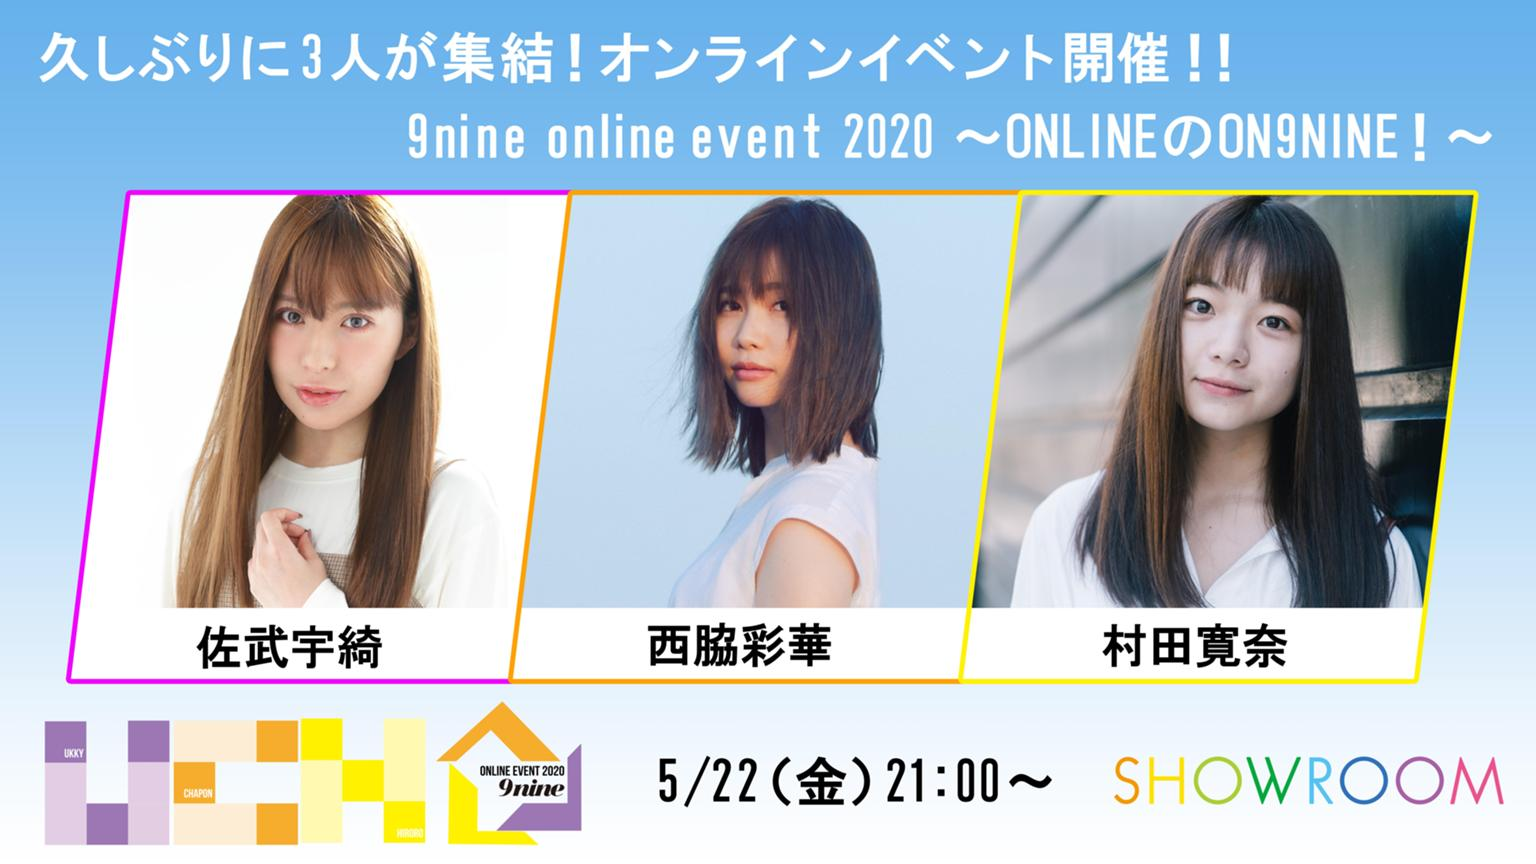 ONLINEのON9NINE ROOM